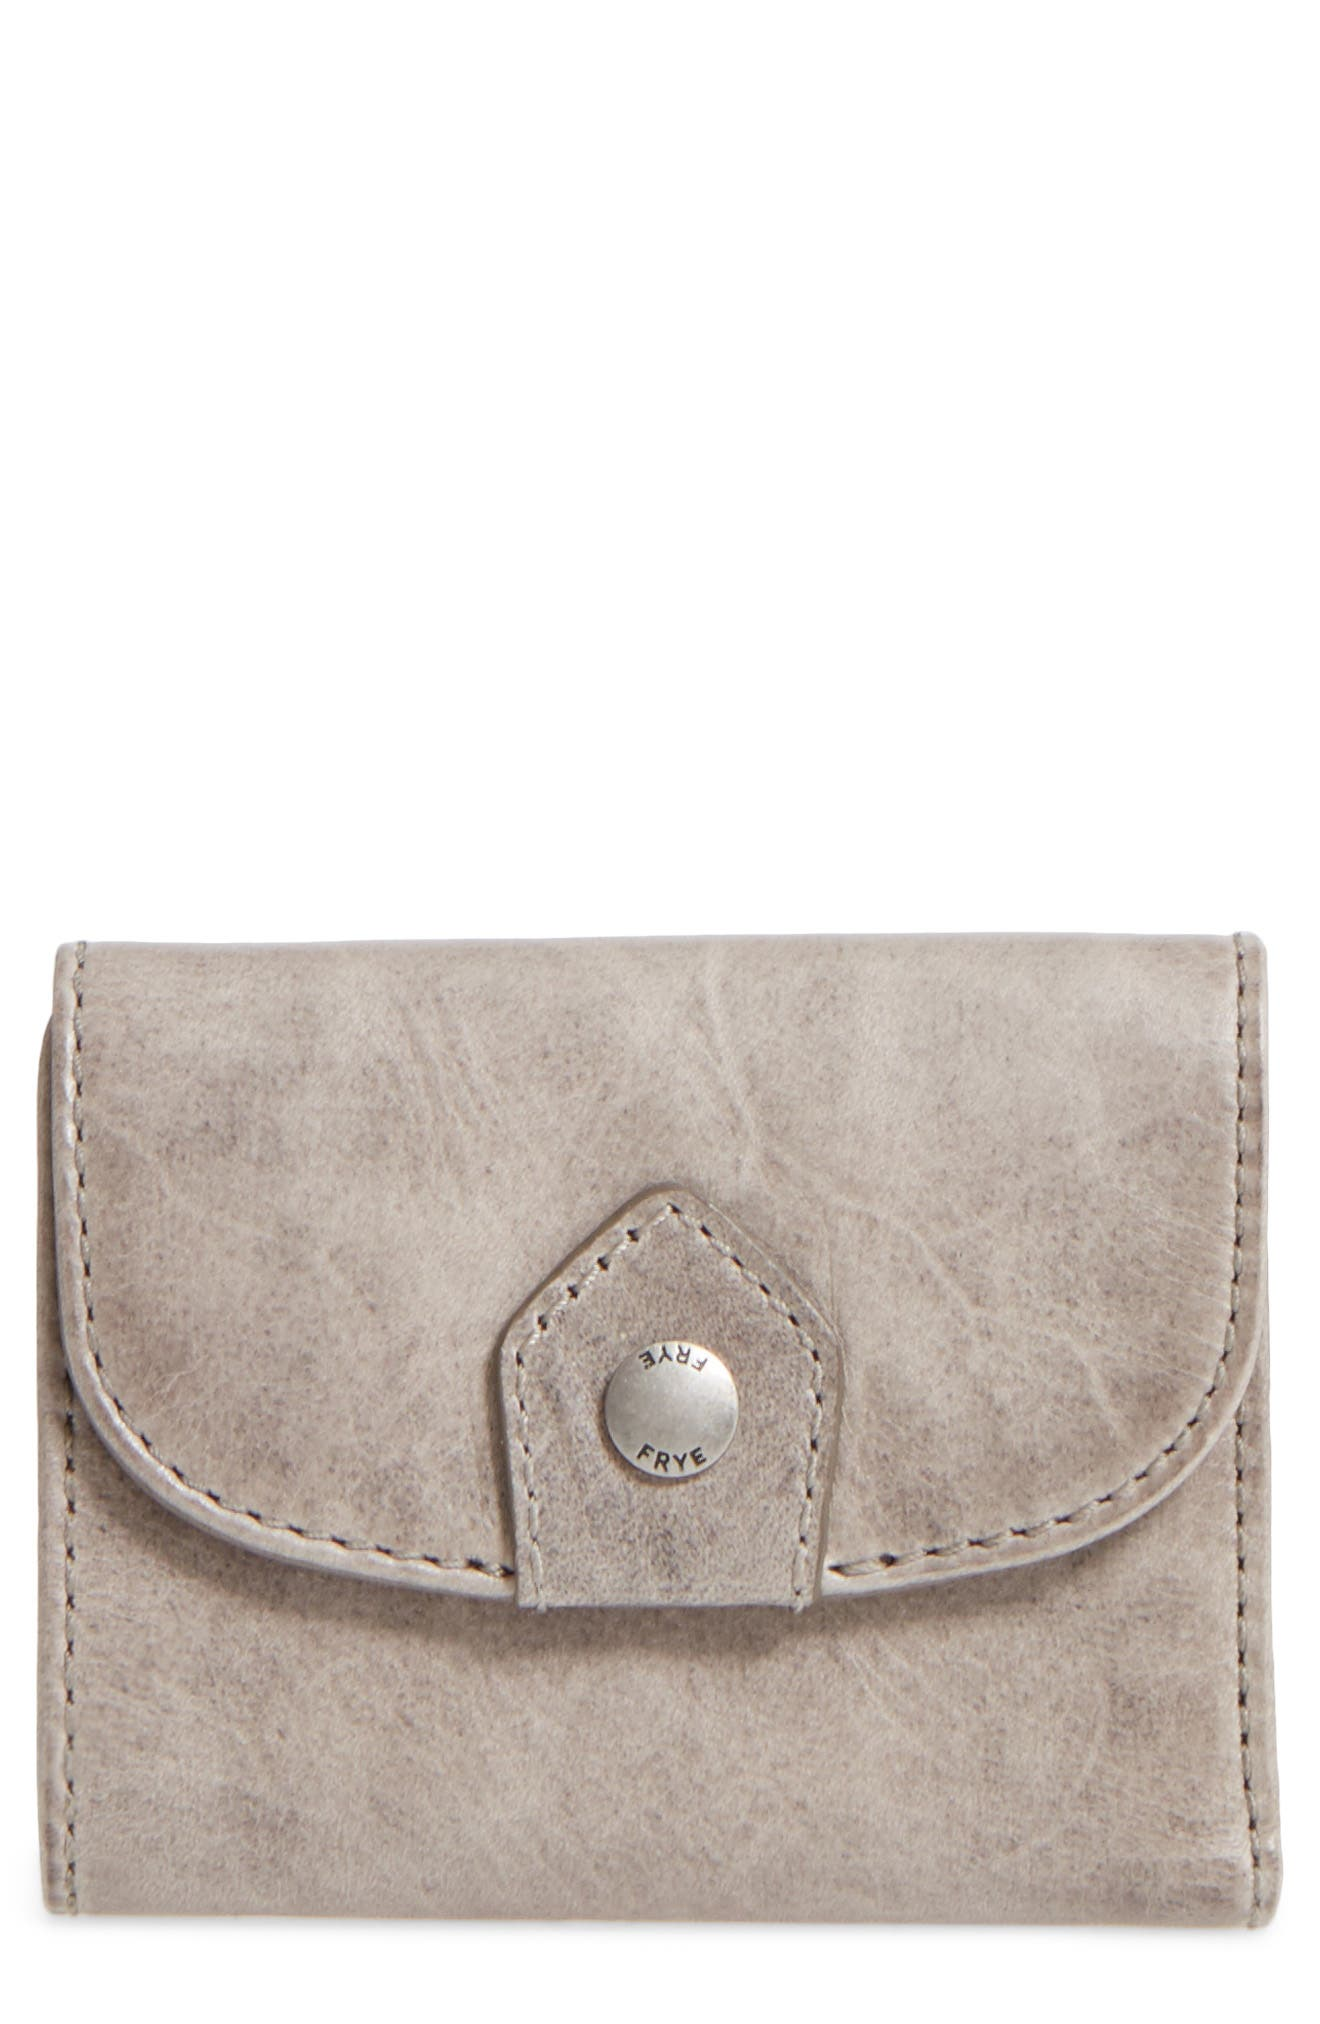 FRYE Melissa Medium Trifold Leather Wallet, Main, color, 020